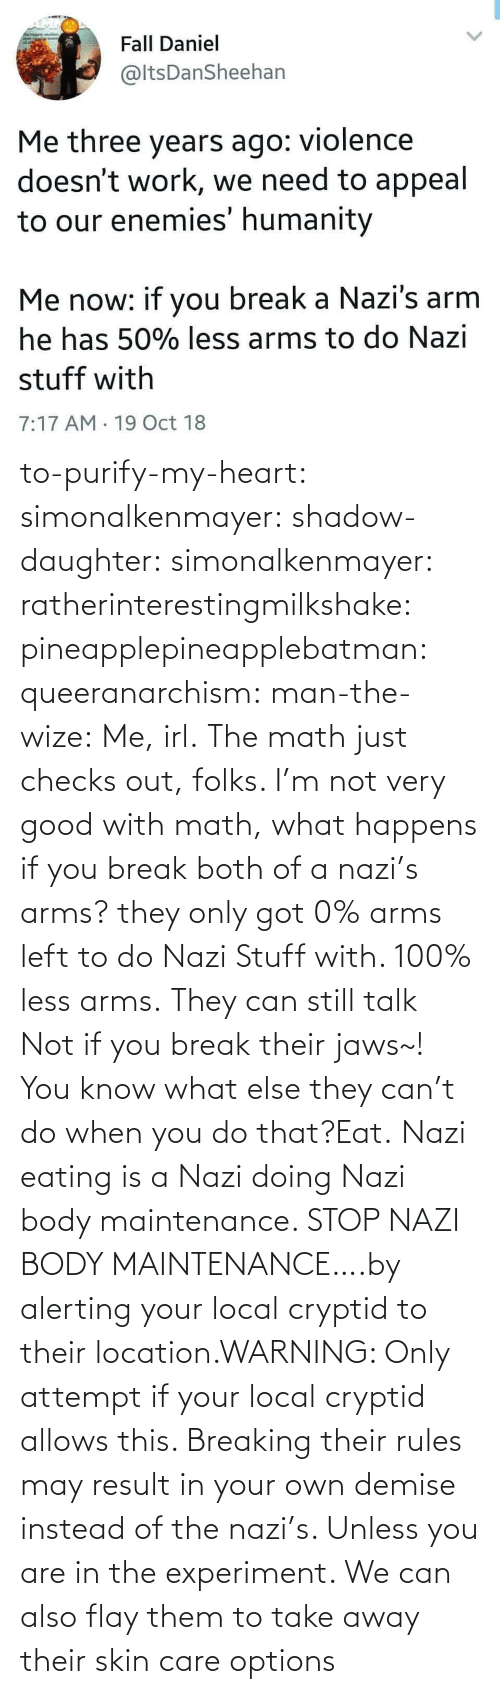 Location: to-purify-my-heart:  simonalkenmayer:  shadow-daughter: simonalkenmayer:  ratherinterestingmilkshake:  pineapplepineapplebatman:  queeranarchism:  man-the-wize: Me, irl. The math just checks out, folks.     I'm not very good with math, what happens if you break both of a nazi's arms?  they only got 0% arms left to do Nazi Stuff with. 100% less arms.  They can still talk  Not if you break their jaws~!  You know what else they can't do when you do that?Eat.   Nazi eating is a Nazi doing Nazi body maintenance. STOP NAZI BODY MAINTENANCE….by alerting your local cryptid to their location.WARNING: Only attempt if your local cryptid allows this. Breaking their rules may result in your own demise instead of the nazi's. Unless you are in the experiment.    We can also flay them to take away their skin care options